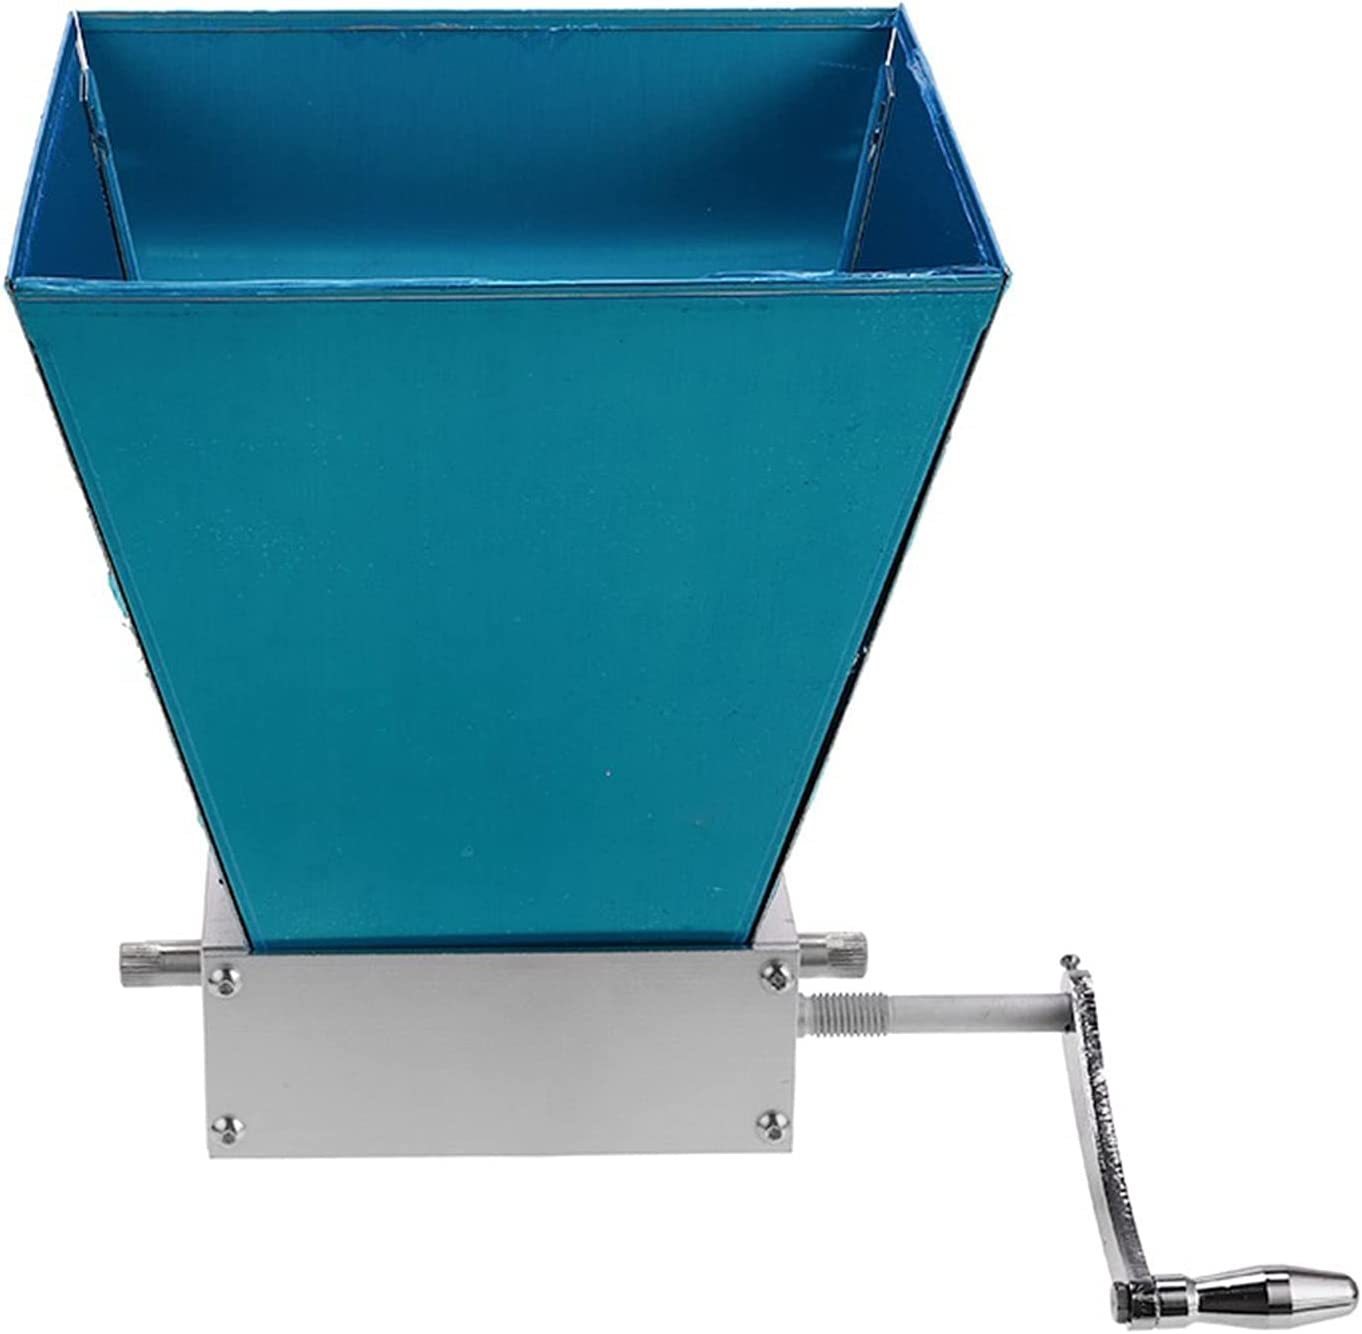 Ranking TOP19 2 Rollers Steel Barley Crusher Grain Malt Mill S for service Small